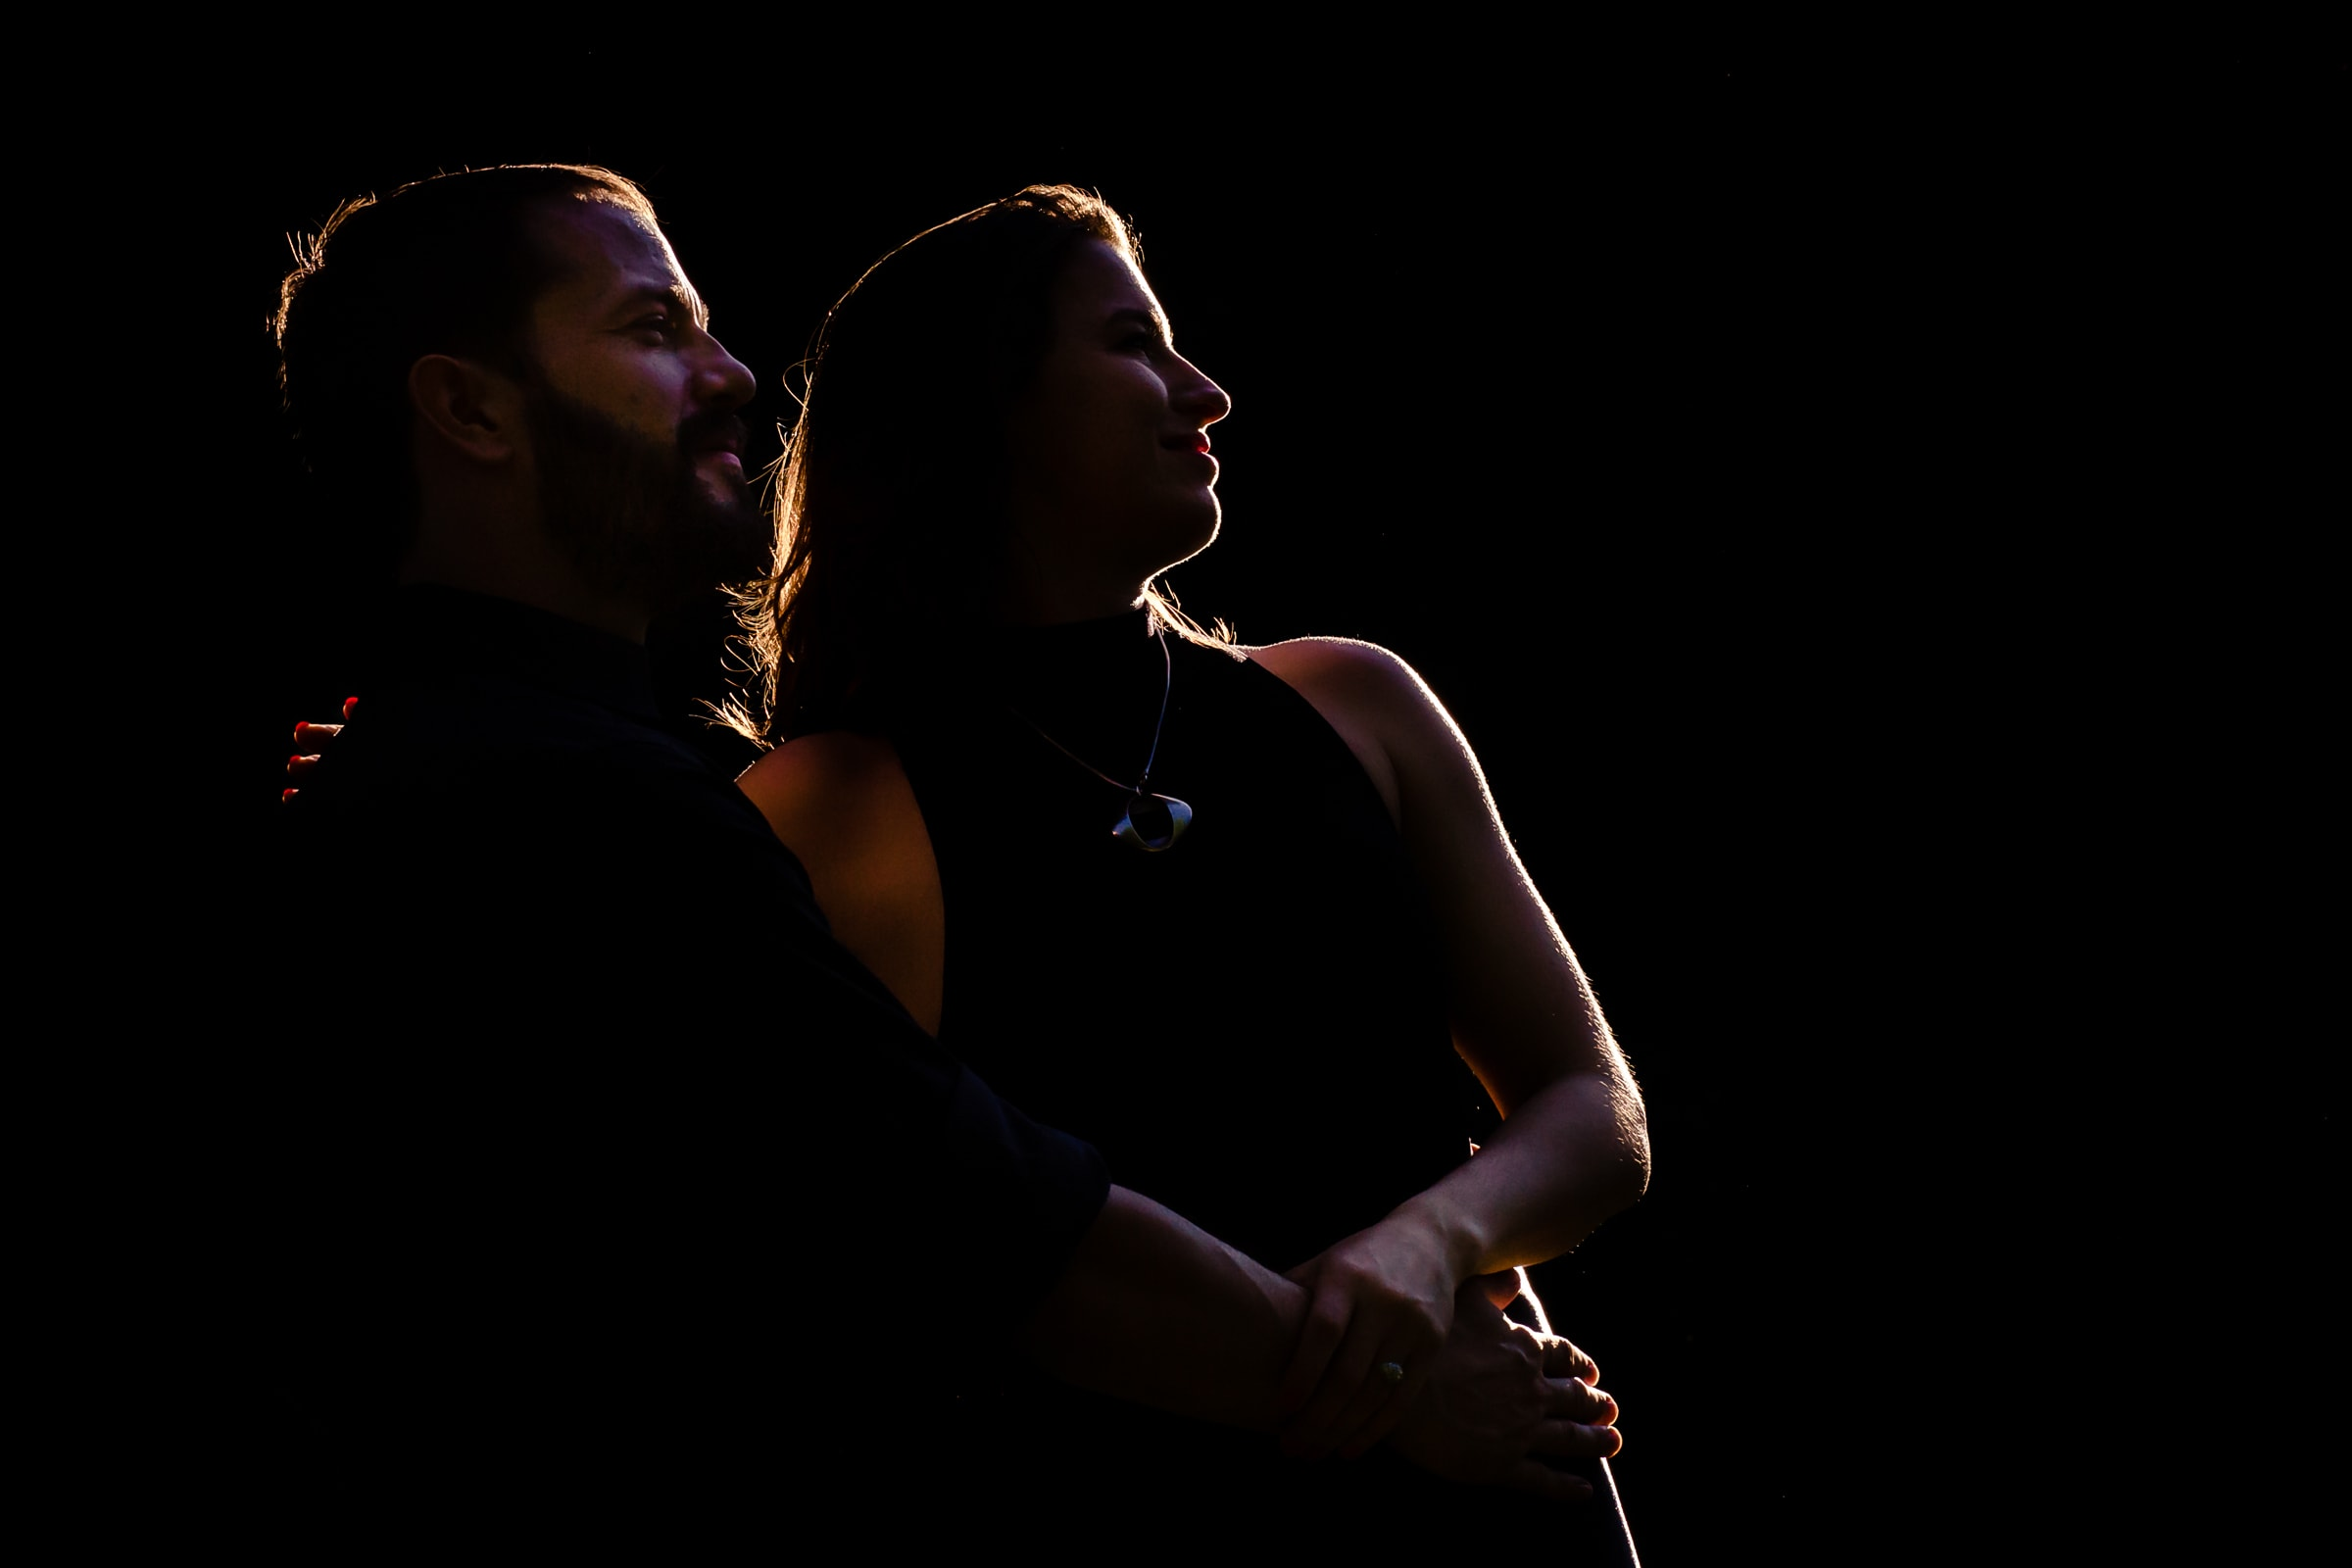 Creative Portland engagement photos of a couple in a warm sunset silhouette